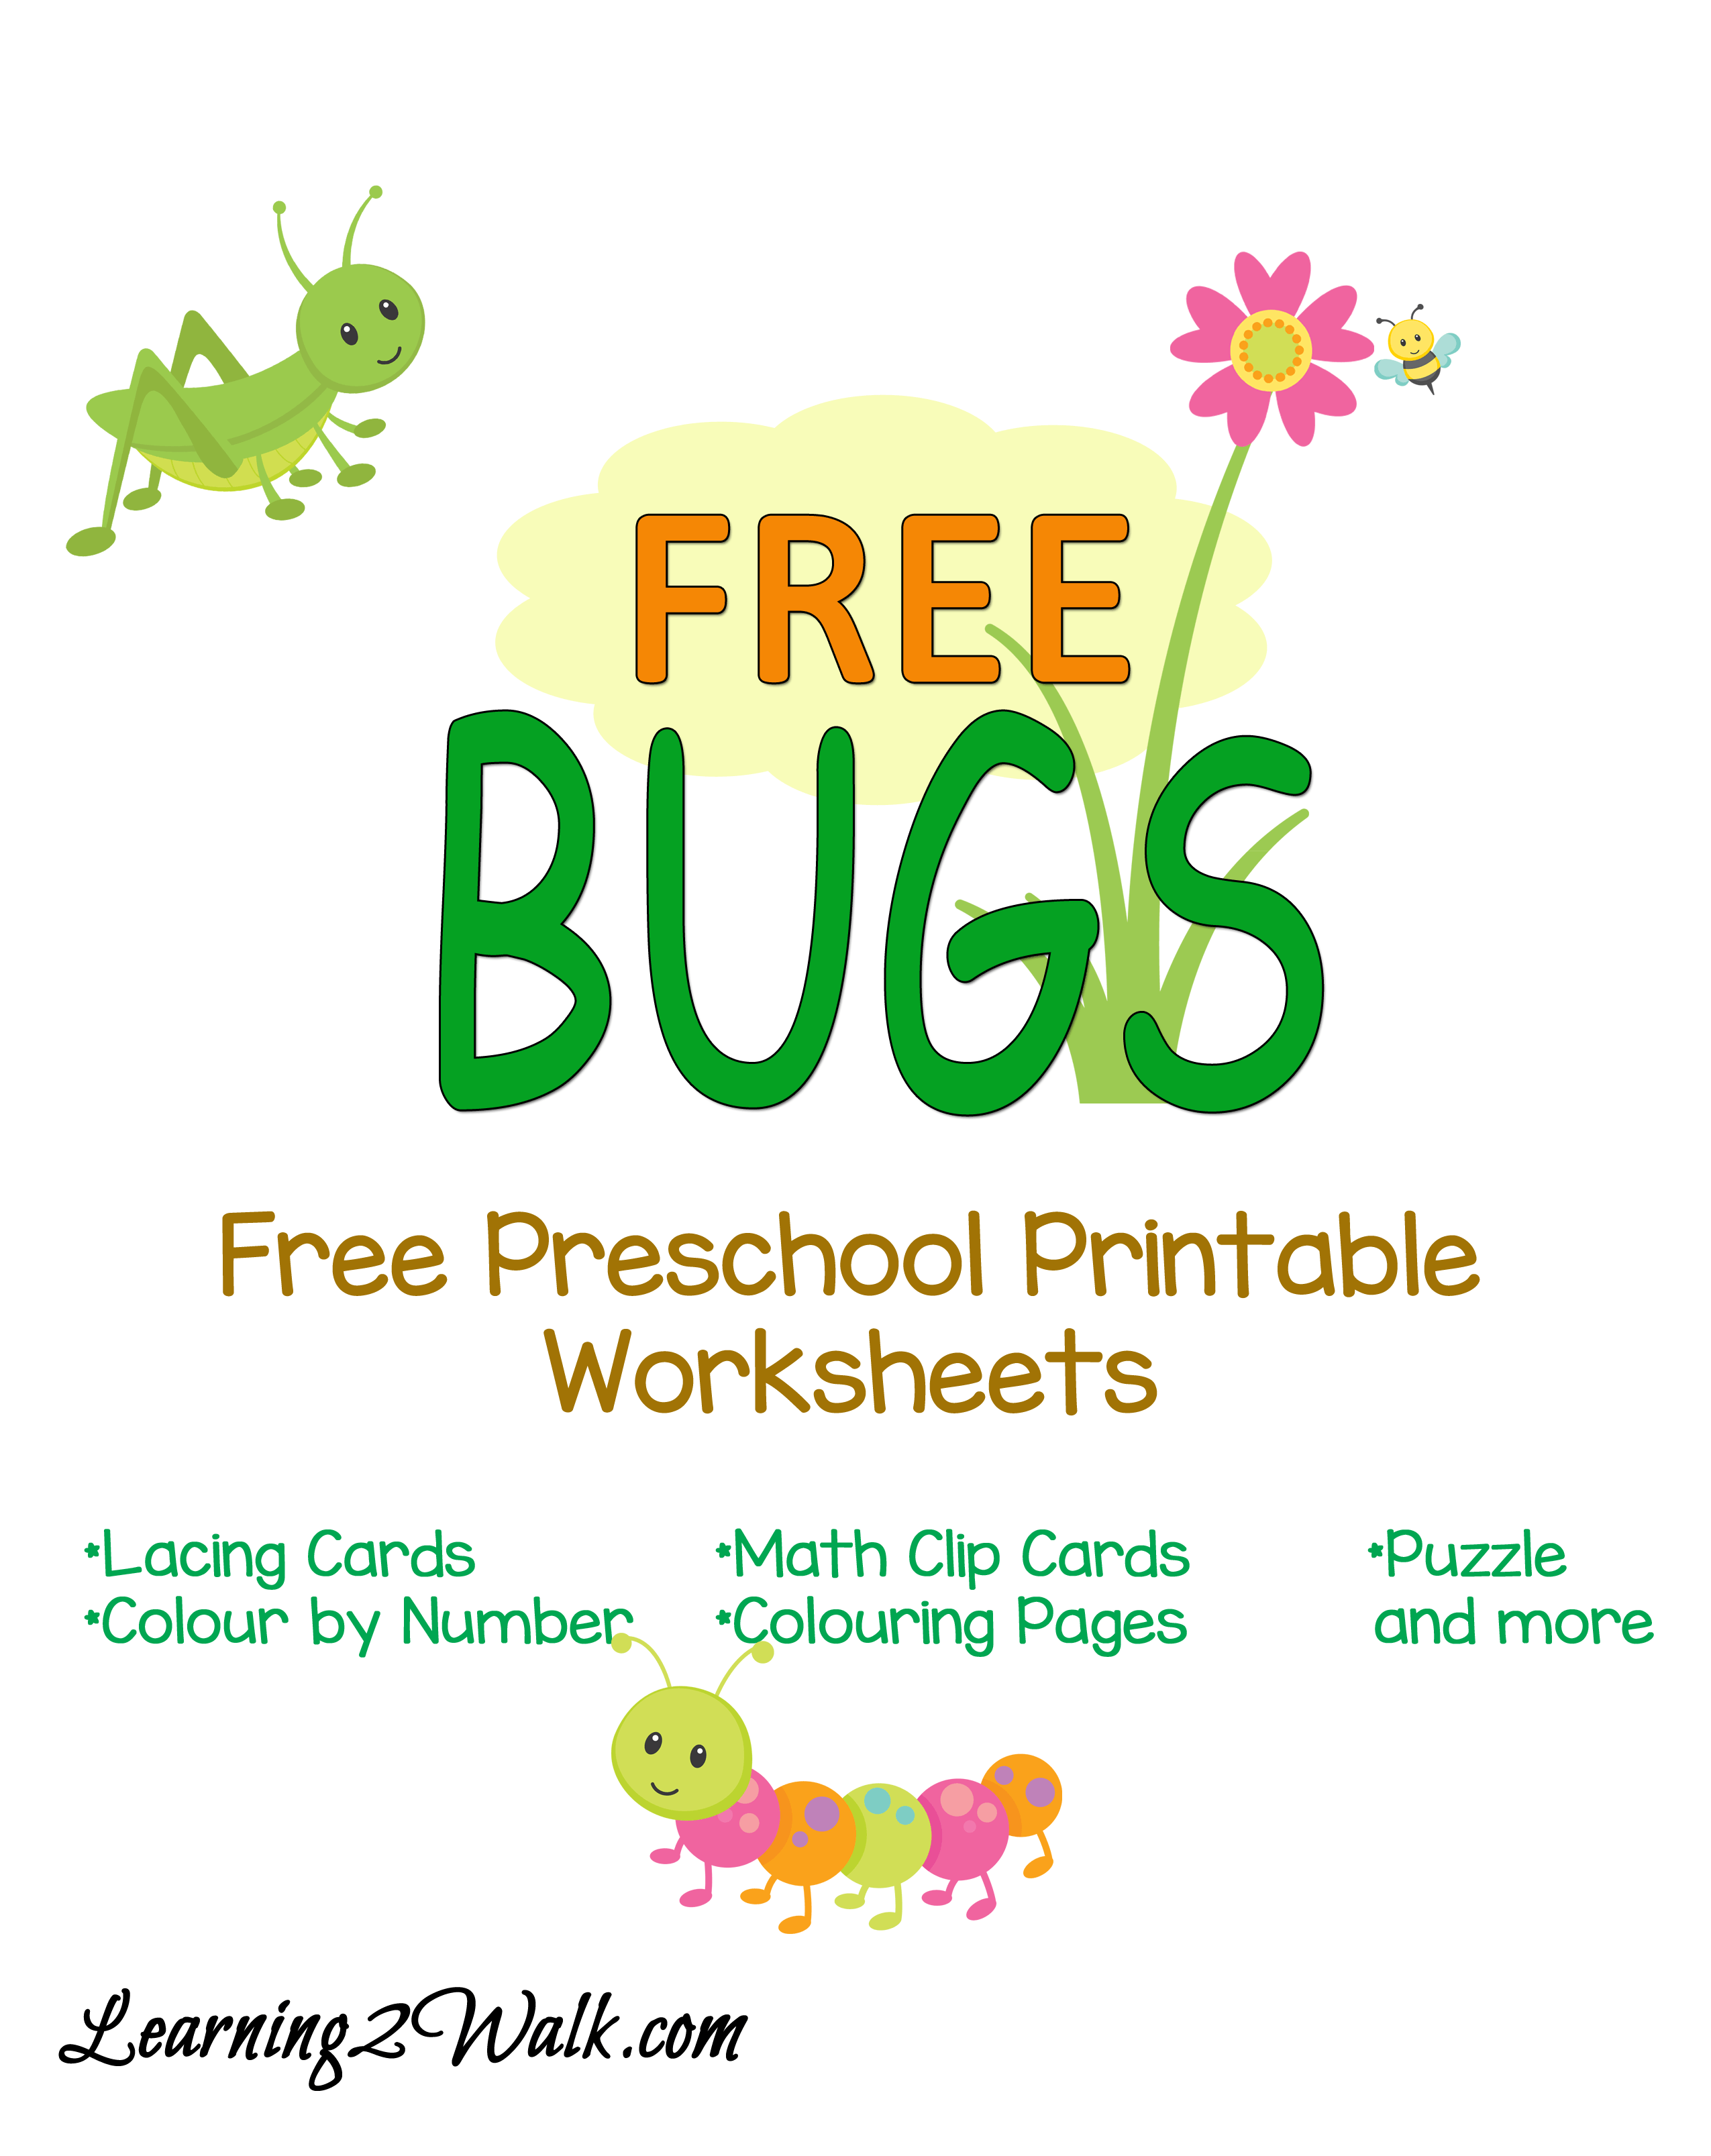 Free Bugs Preschool Printable Worksheets | Free preschool, Printable ...